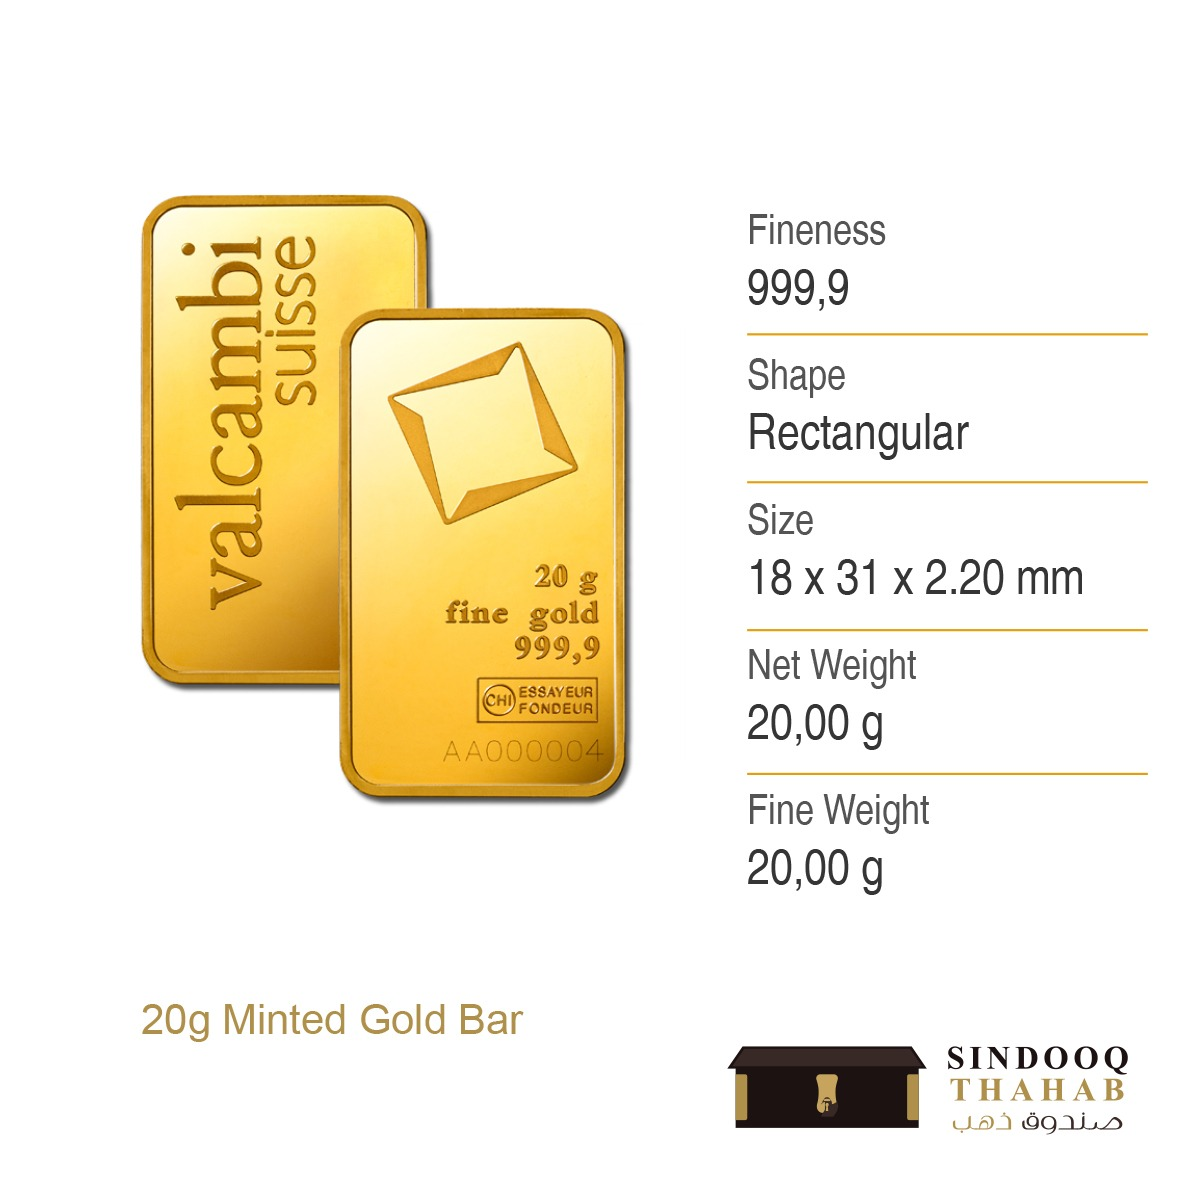 20g Minted Gold Bar